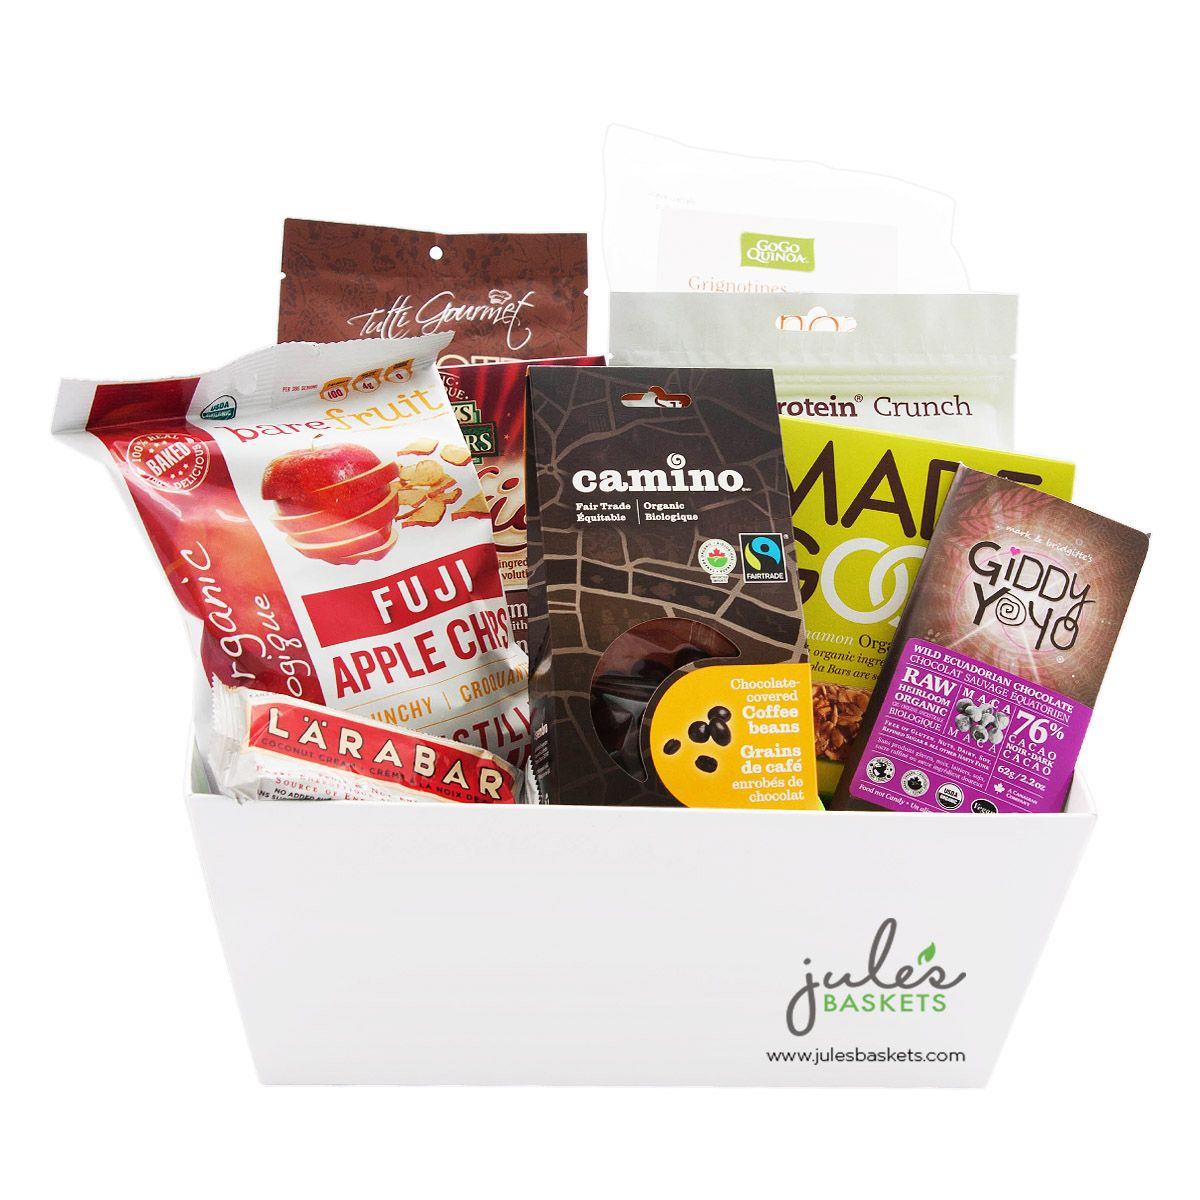 Sweets treats gluten free basket 8799 by jules baskets sweets treats gluten free basket 8799 by jules baskets treats sweets organic negle Image collections